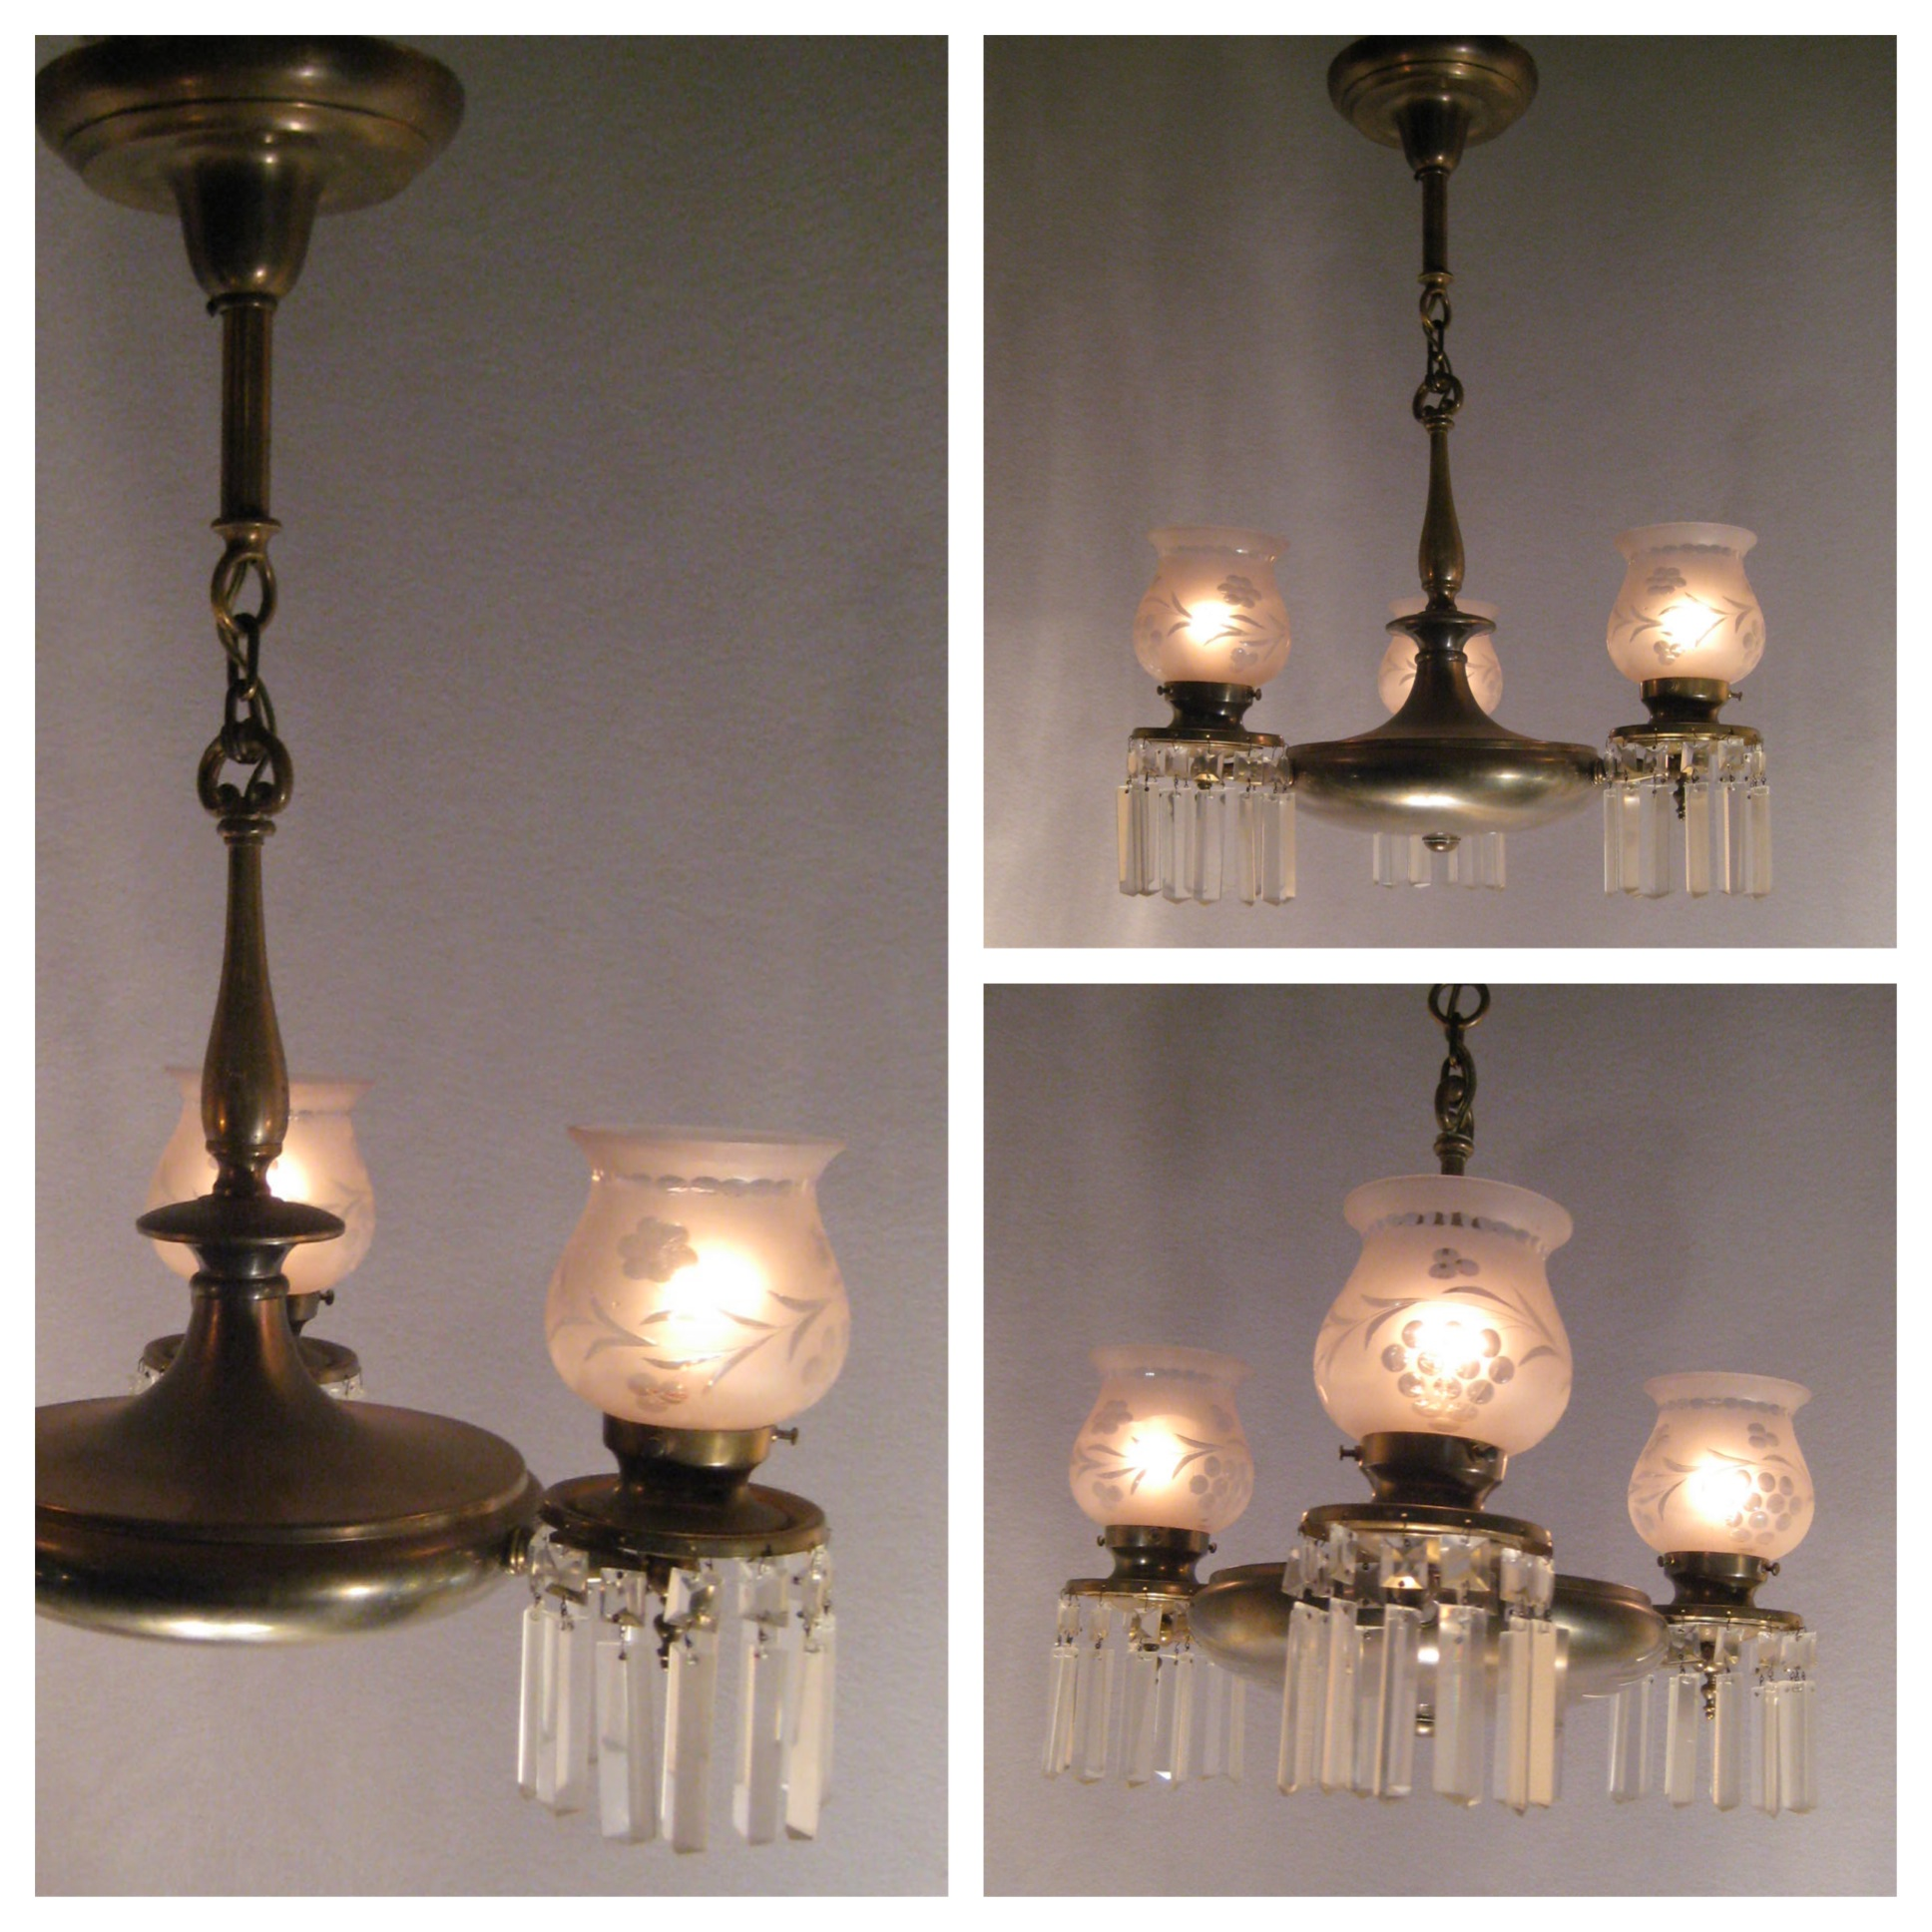 Chandelier Lighting Vancouver Bc: #A6236 Colonial Style Brass Chanderlier